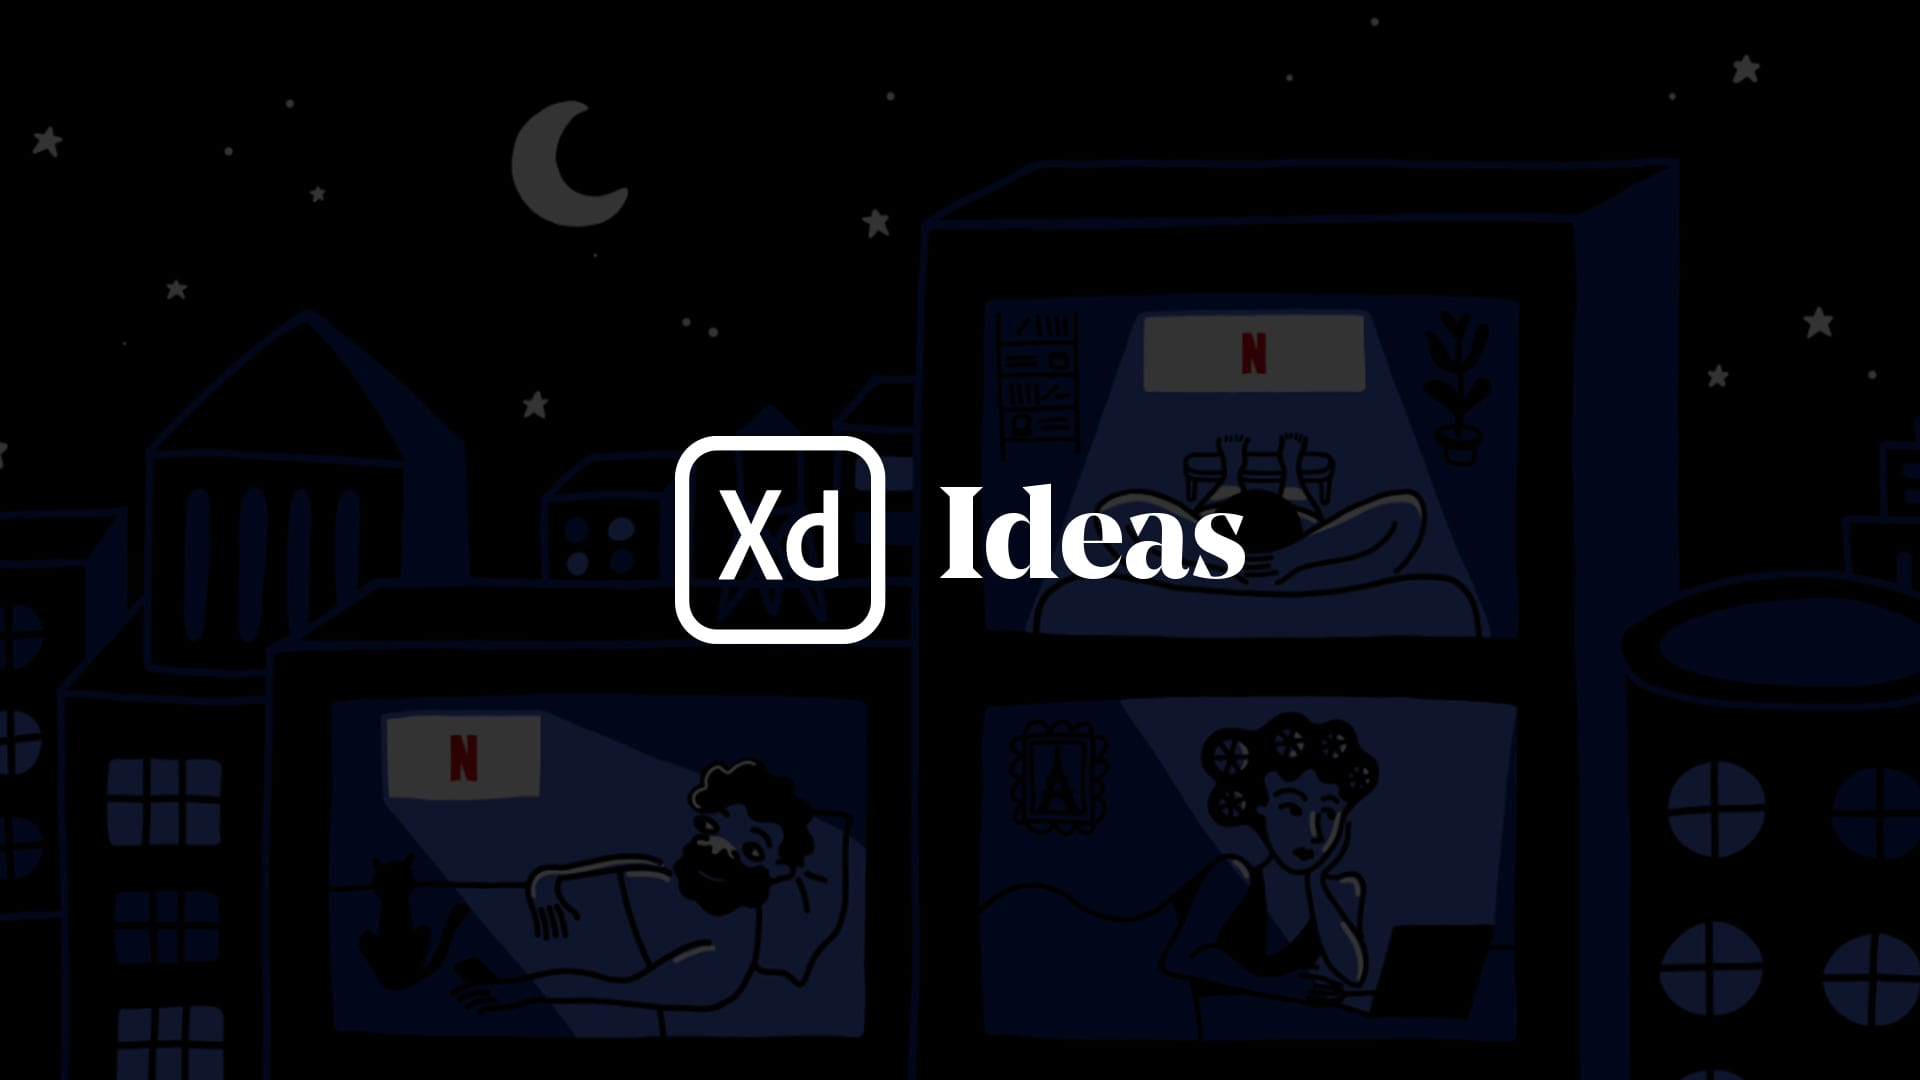 Welcome to XD Ideas – Where Designers Go to Grow | Adobe XD Ideas